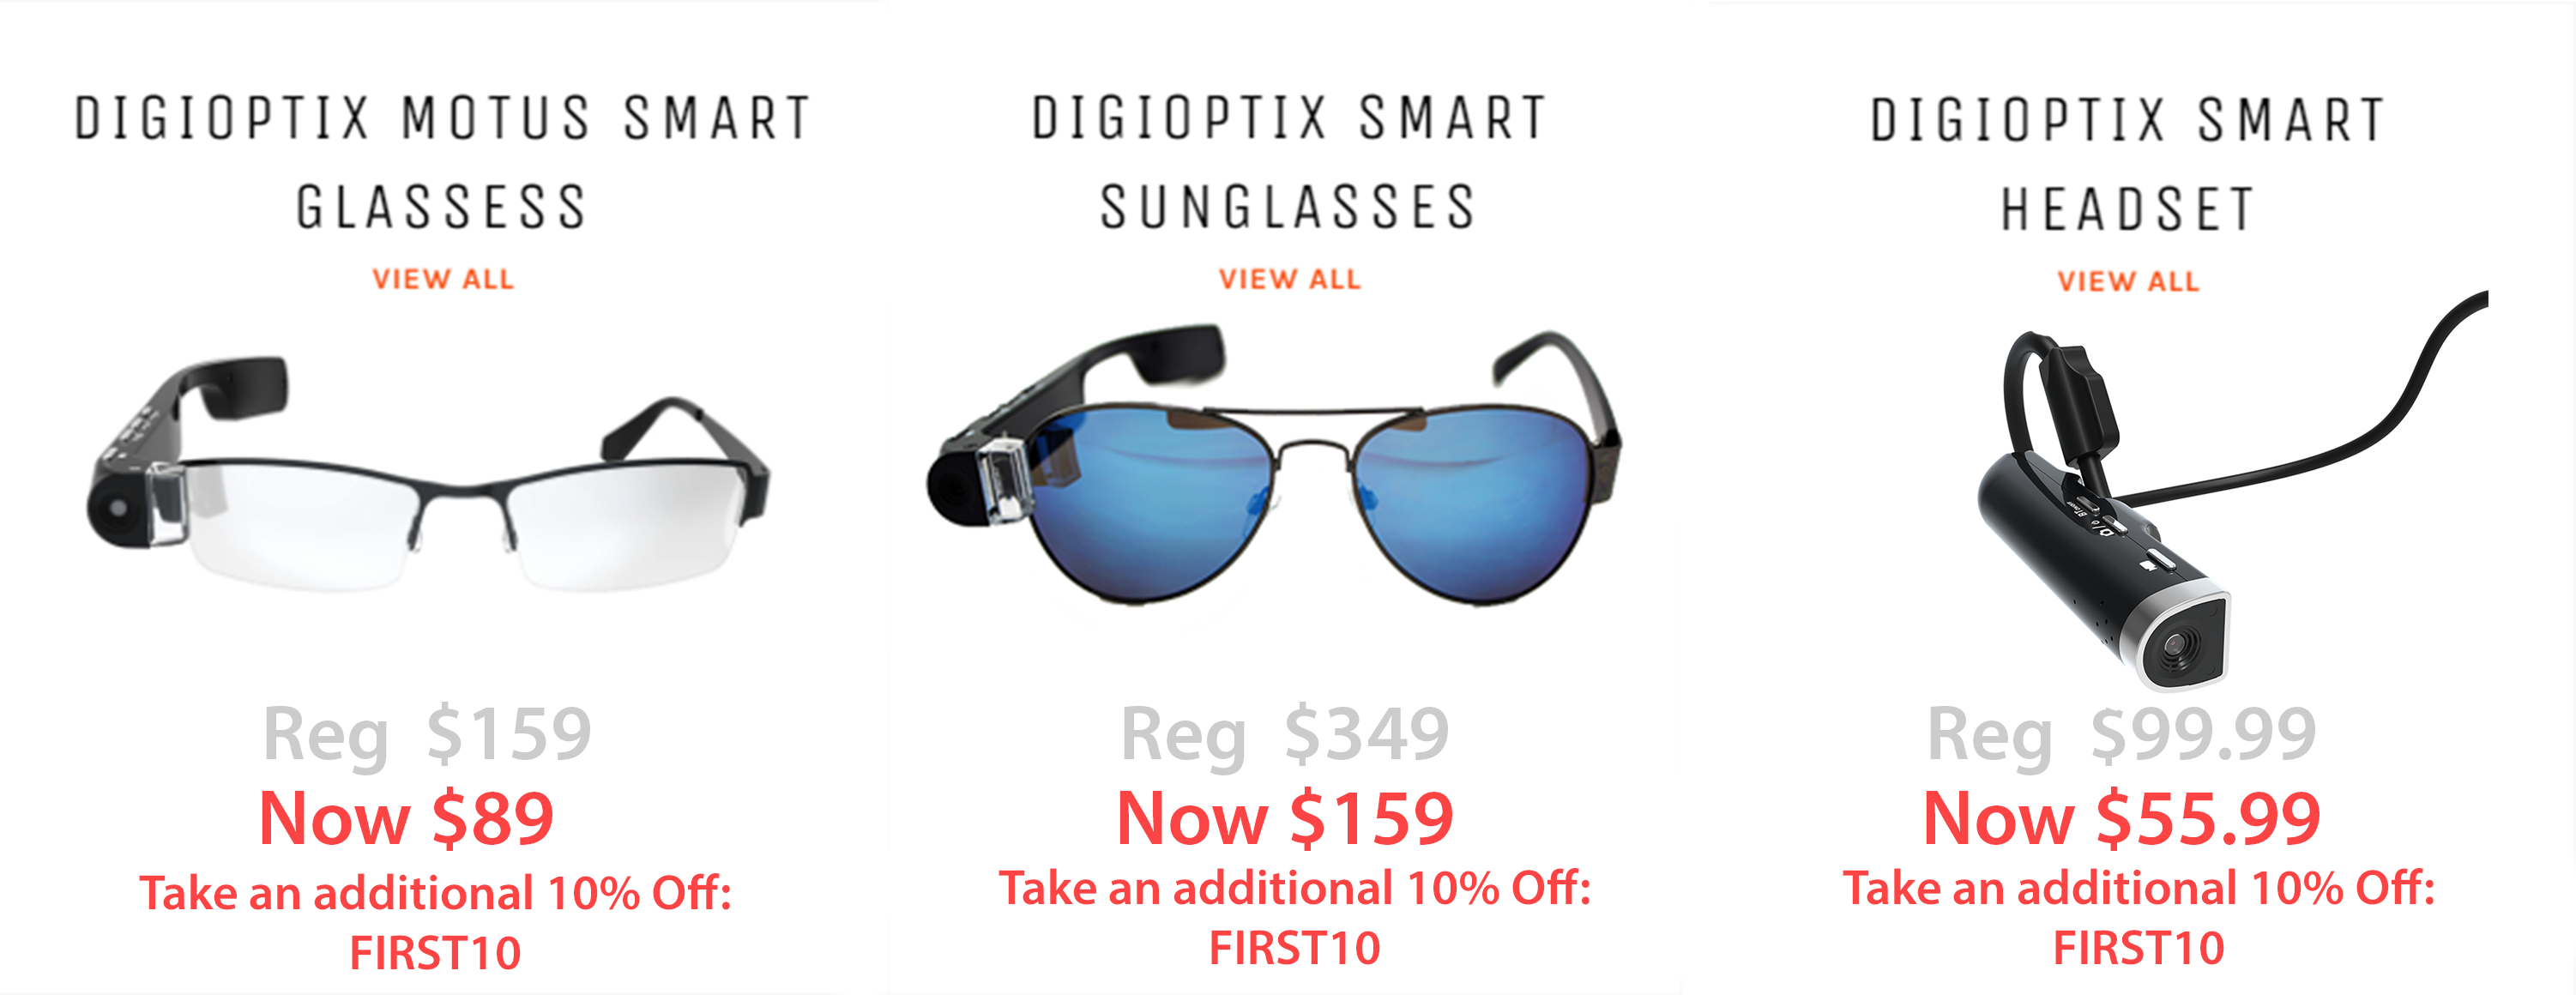 Shop Digioptix now! Best camera glasses and use the coupon code to get an additional 10% OFF